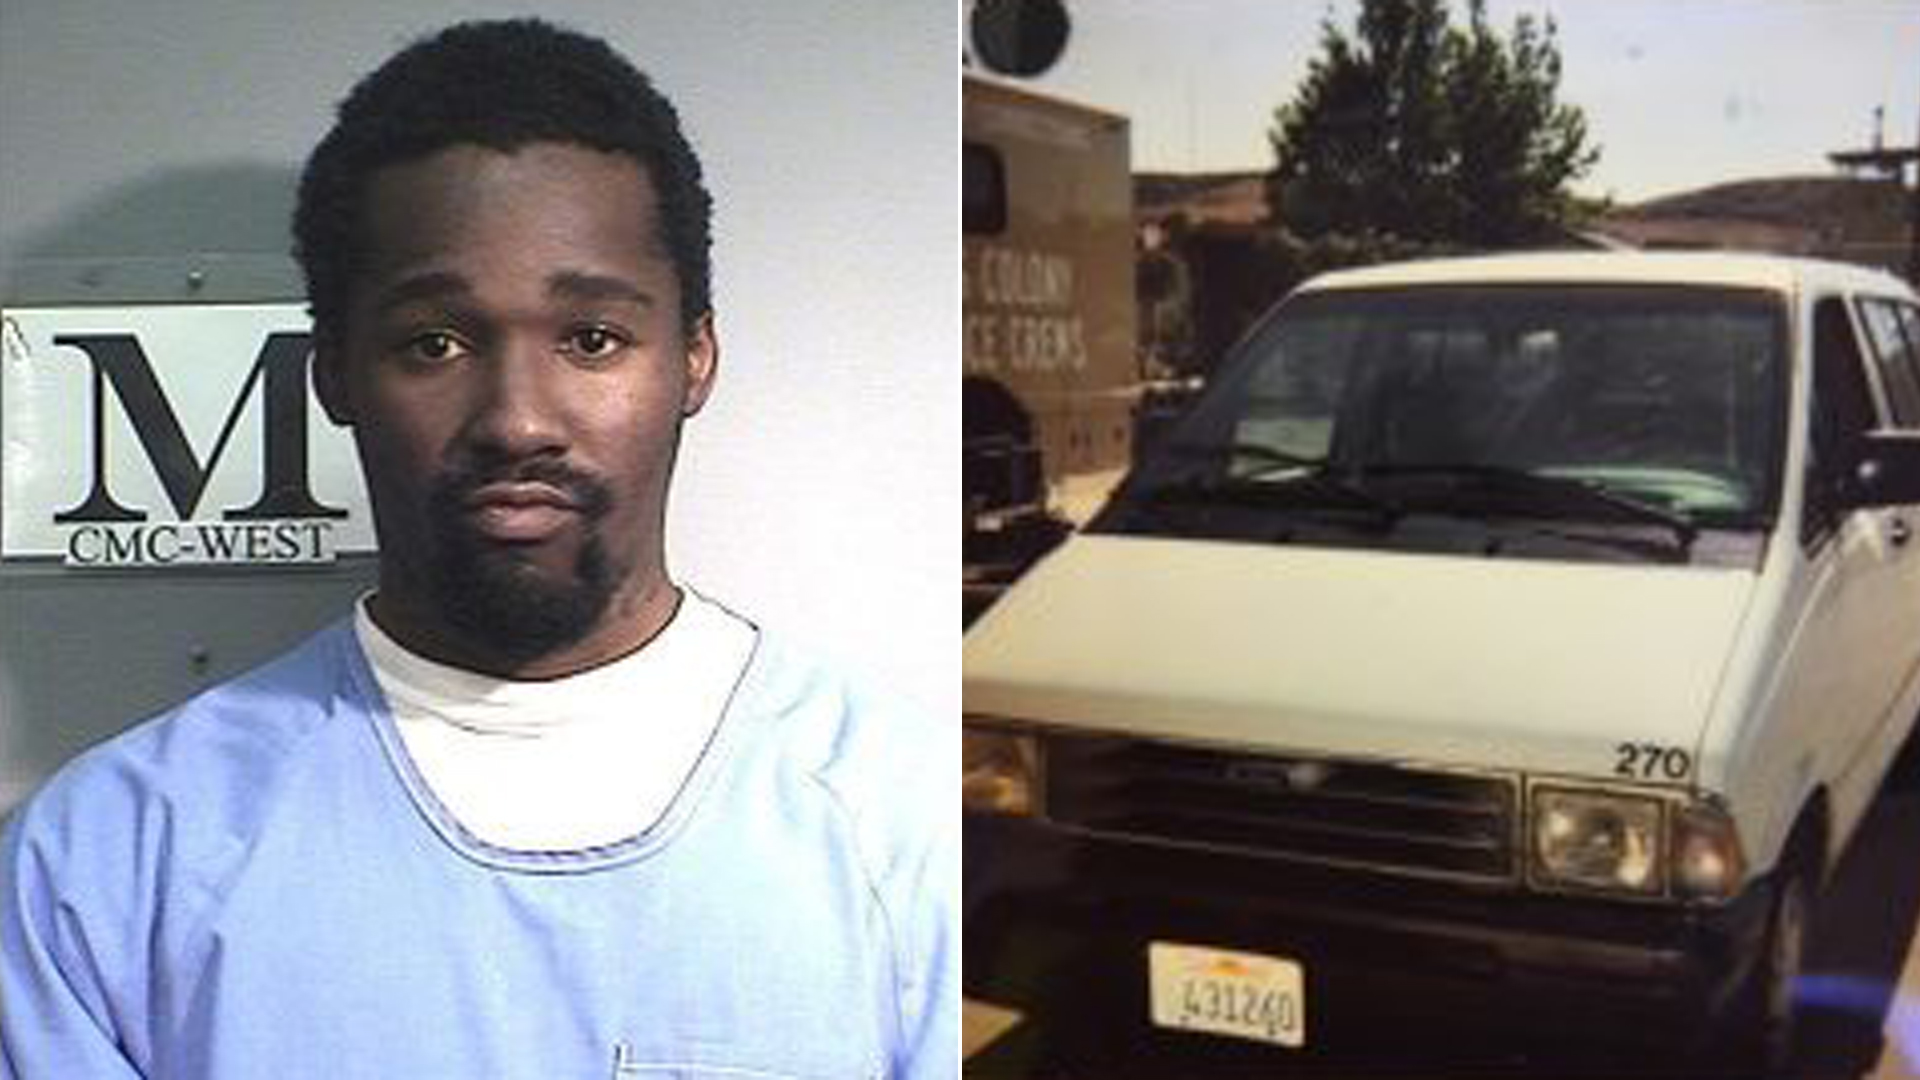 David Gray Hall, left, and the state van officials say he used to escape the California Men's Colony prison in San Luis Obispo are seen in images released Oct. 30, 2018, by the California Department of Corrections and Rehabilitation.